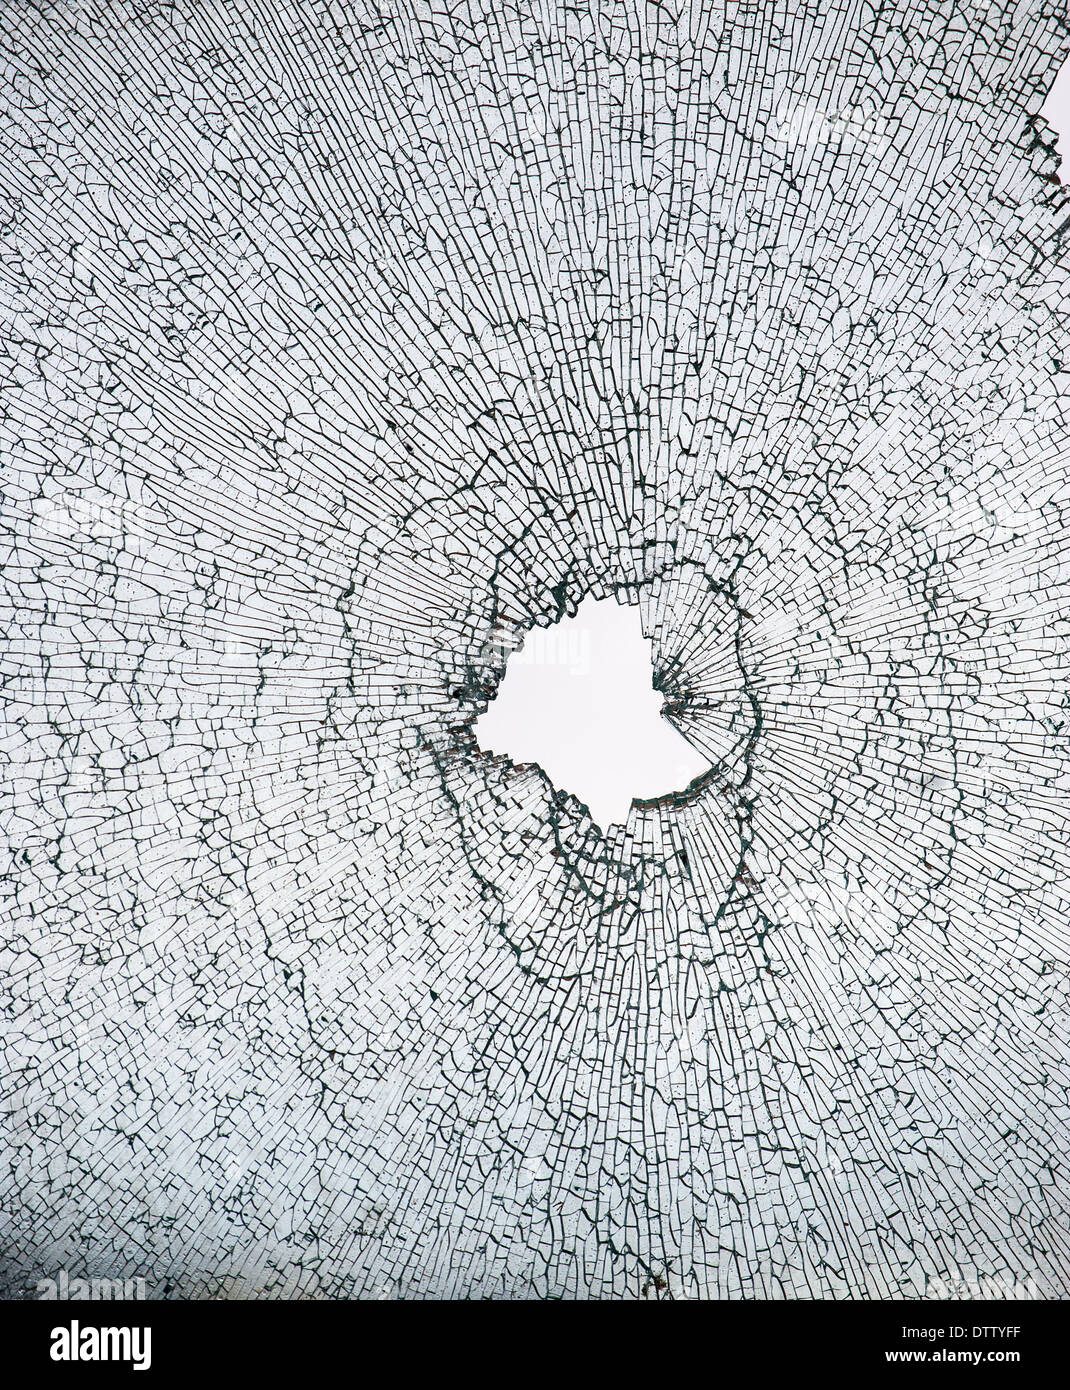 Close up of a shattered window - Stock Image